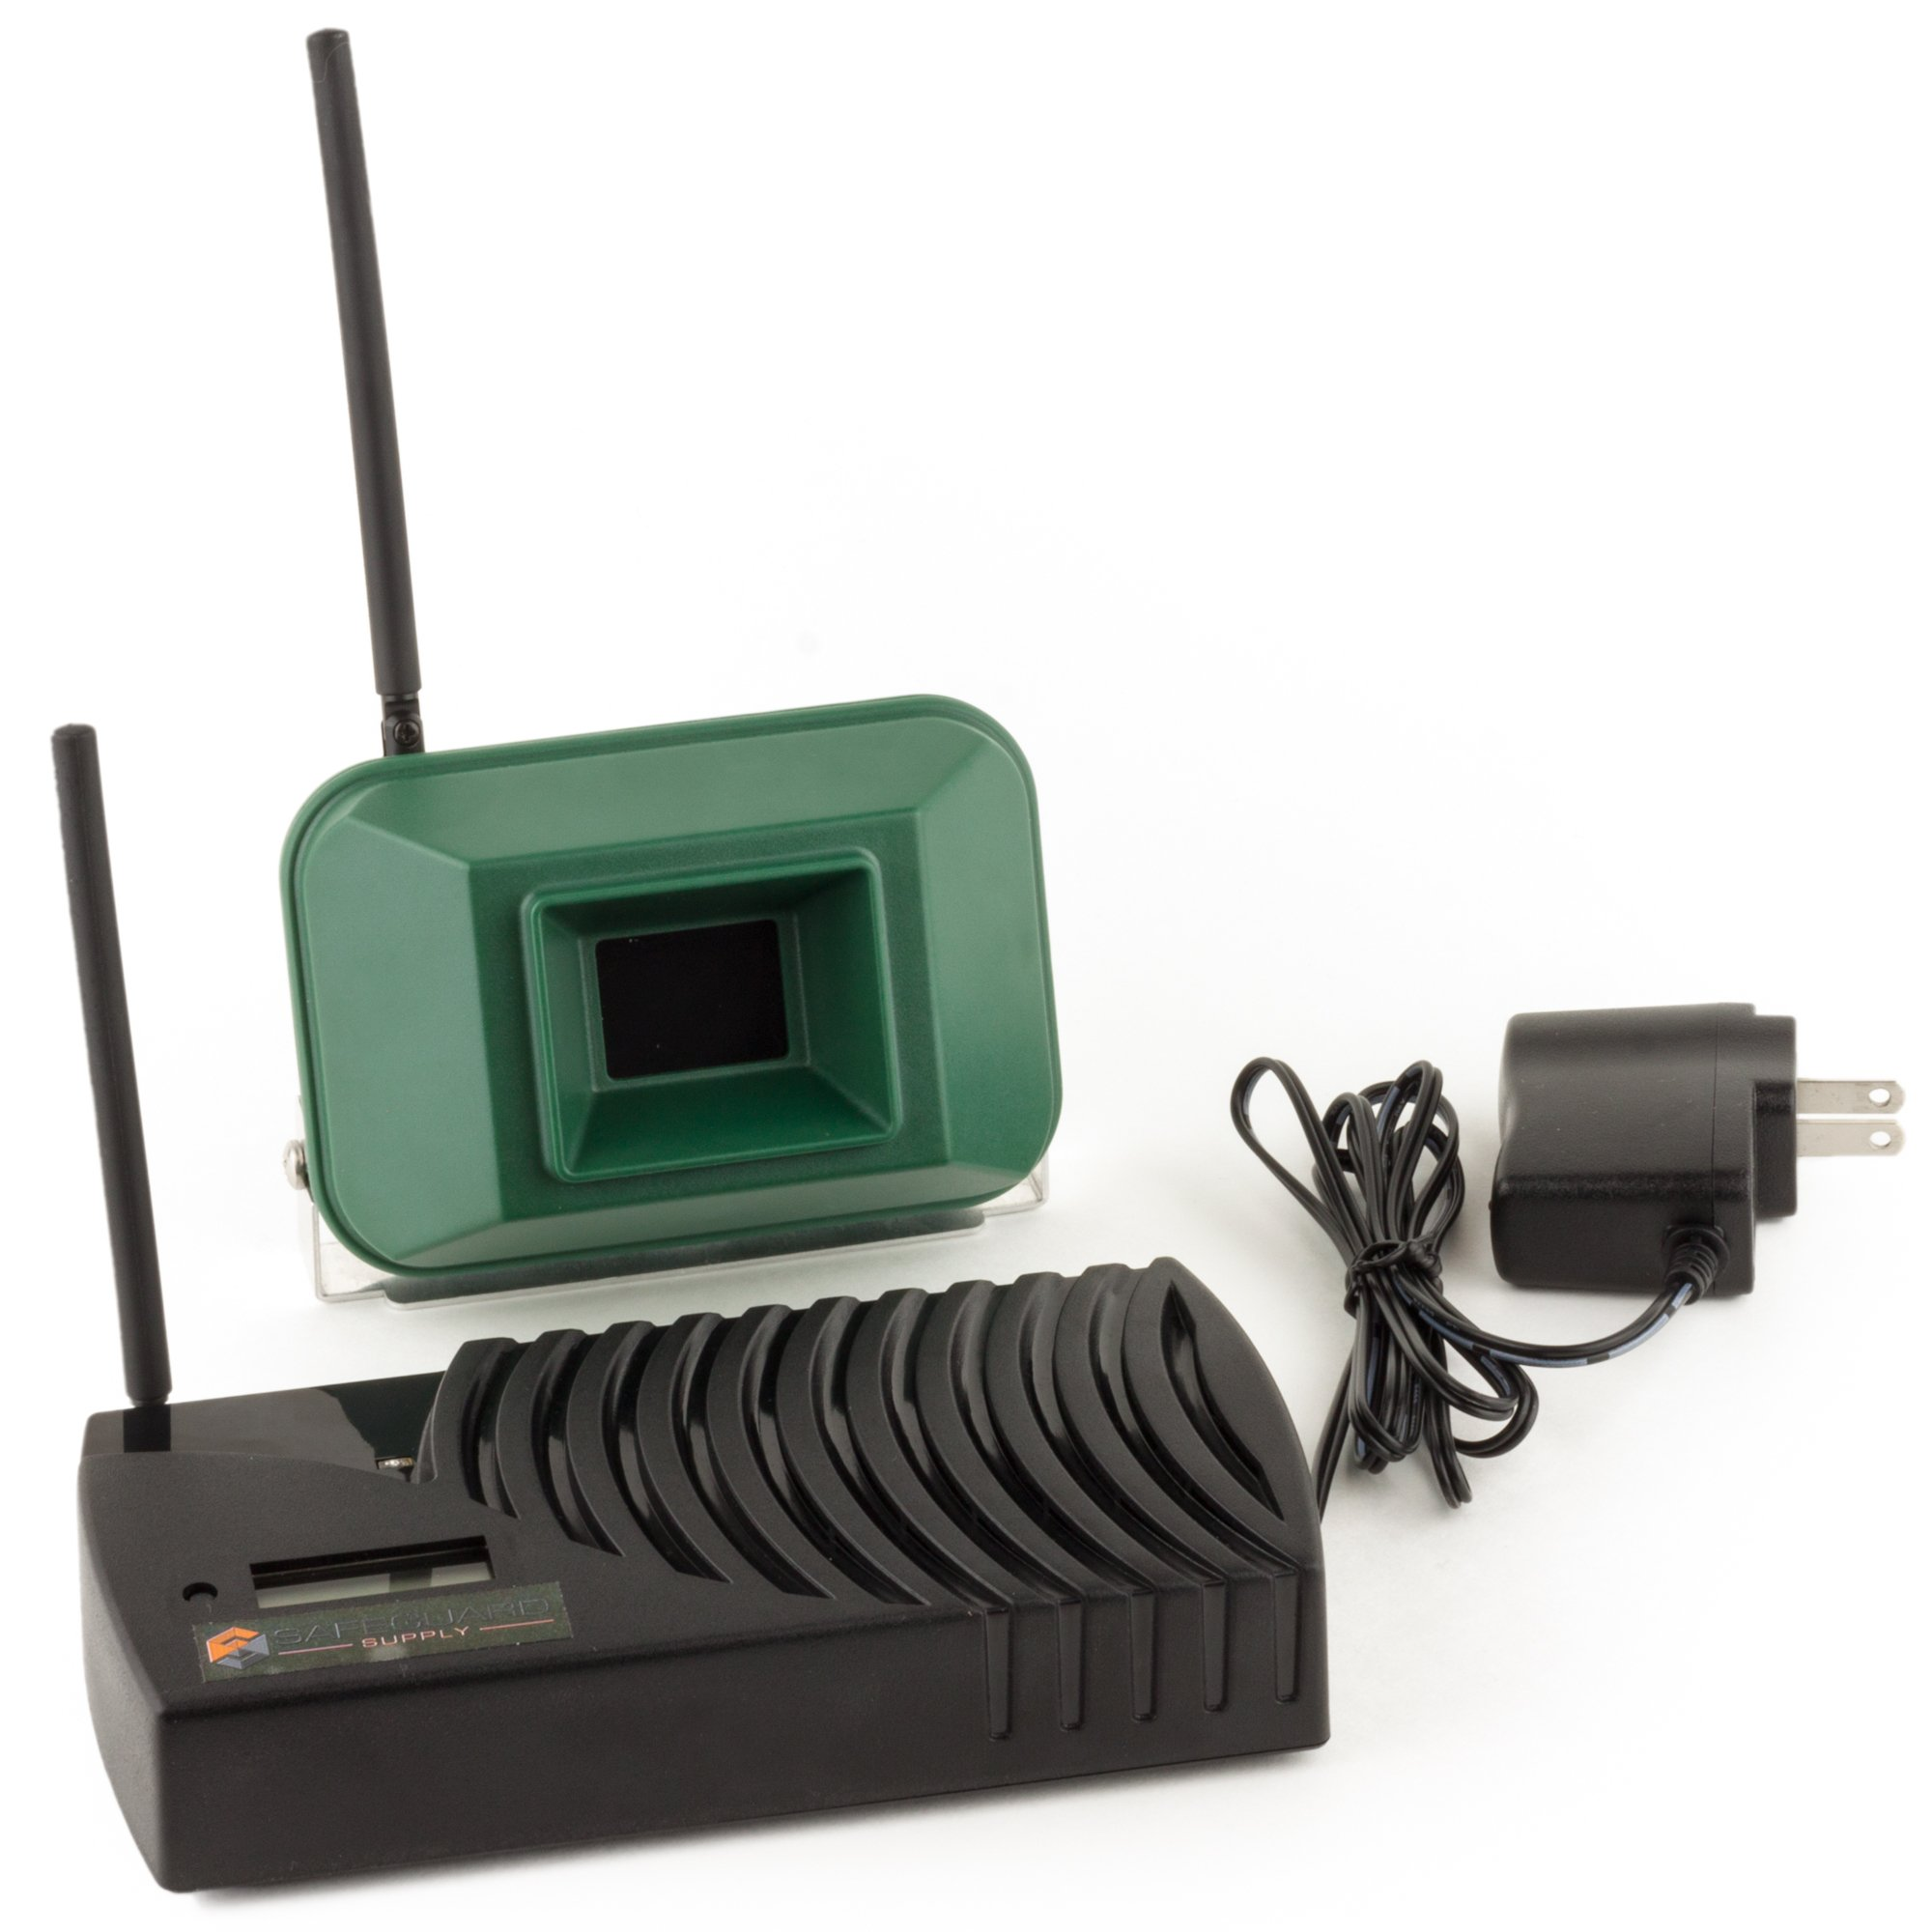 Driveway Informer Wireless Driveway Alarm-USA Made Driveway Alarm Long Range 1000' Transmitter & Receiver Included In Kit-Driveway Alarm Sensor Detects Vehicles & People-Ideal for Home & Business